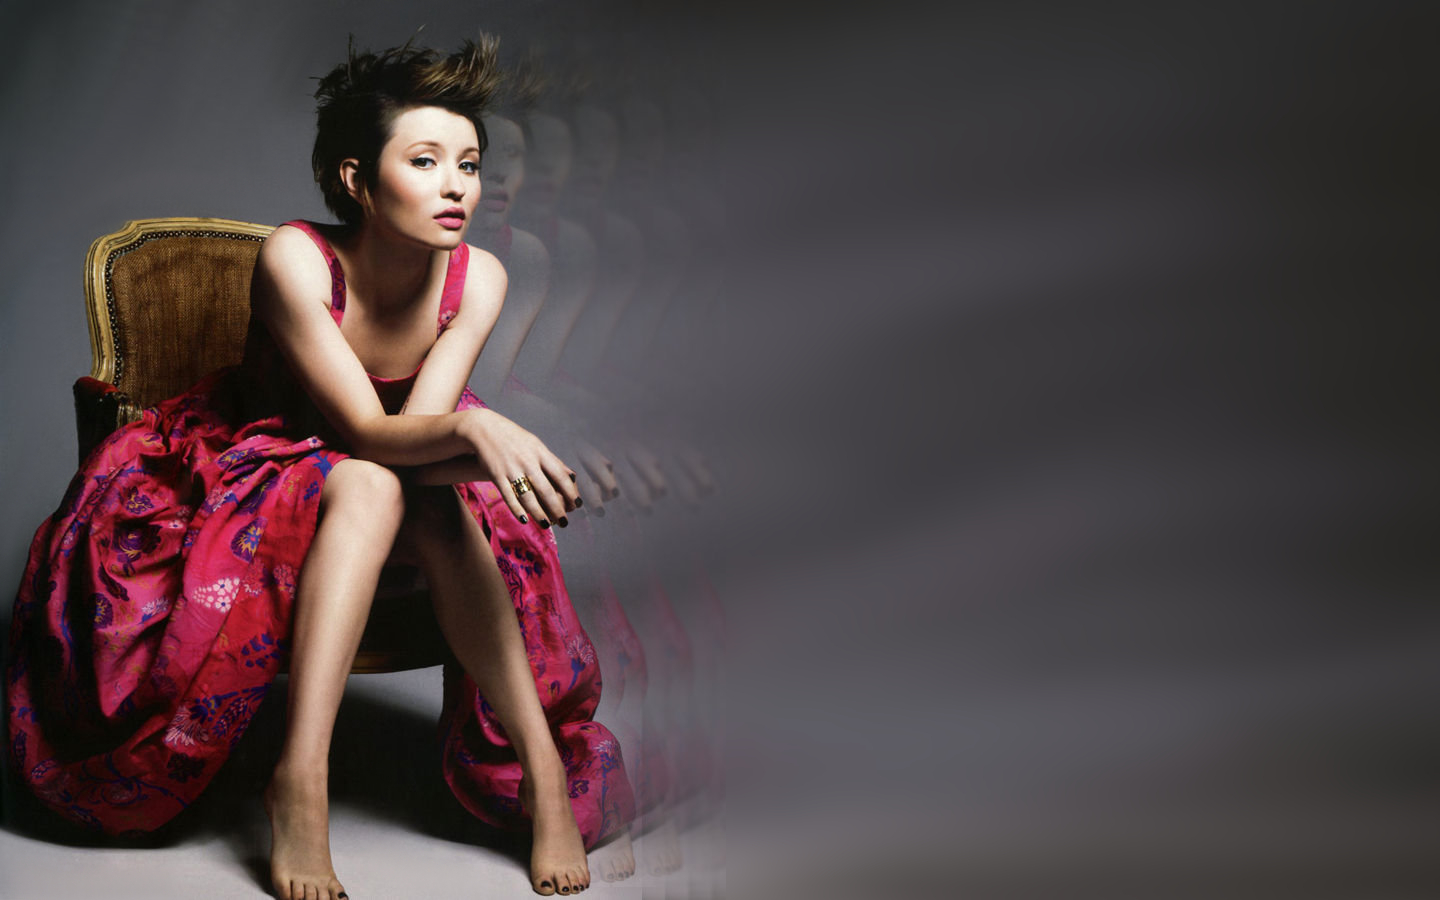 emily browning hd wallpapers - movieactressphoto.blogspot.in